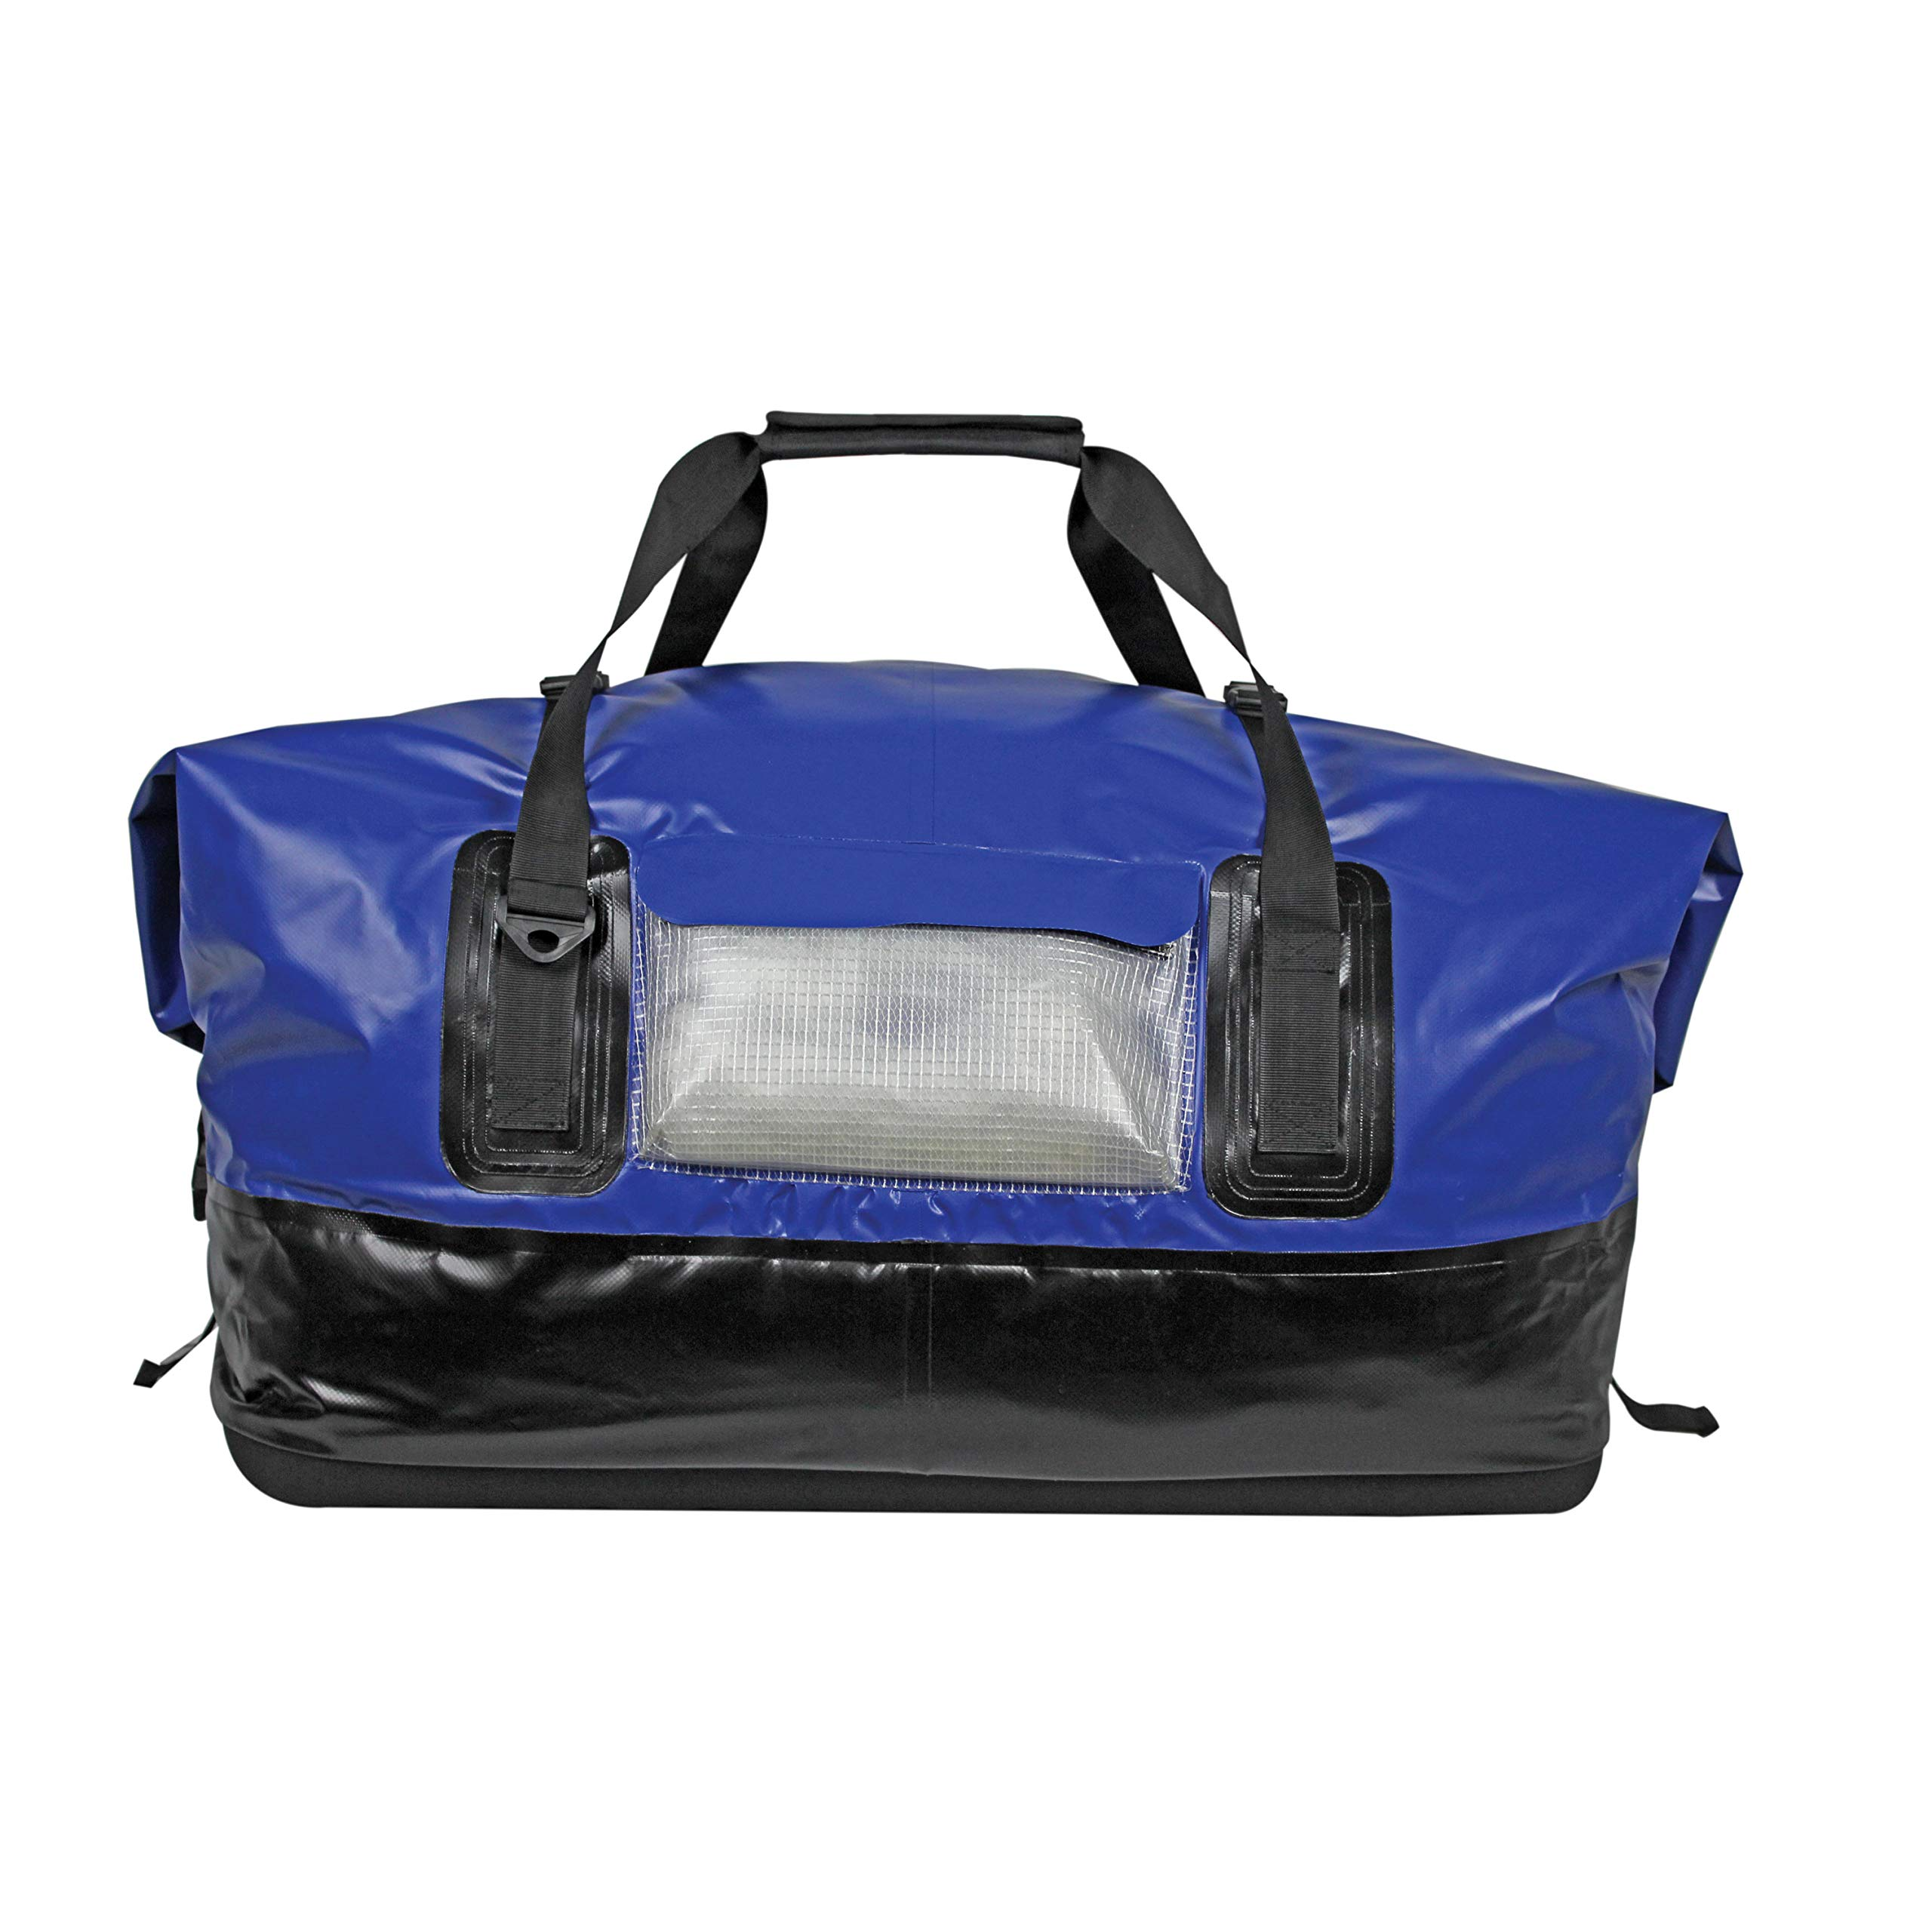 Extreme Max 3006.7345 Dry Tech Waterproof Roll-Top Duffel Bag, Extra Large (110 Liter) - Blue by Extreme Max